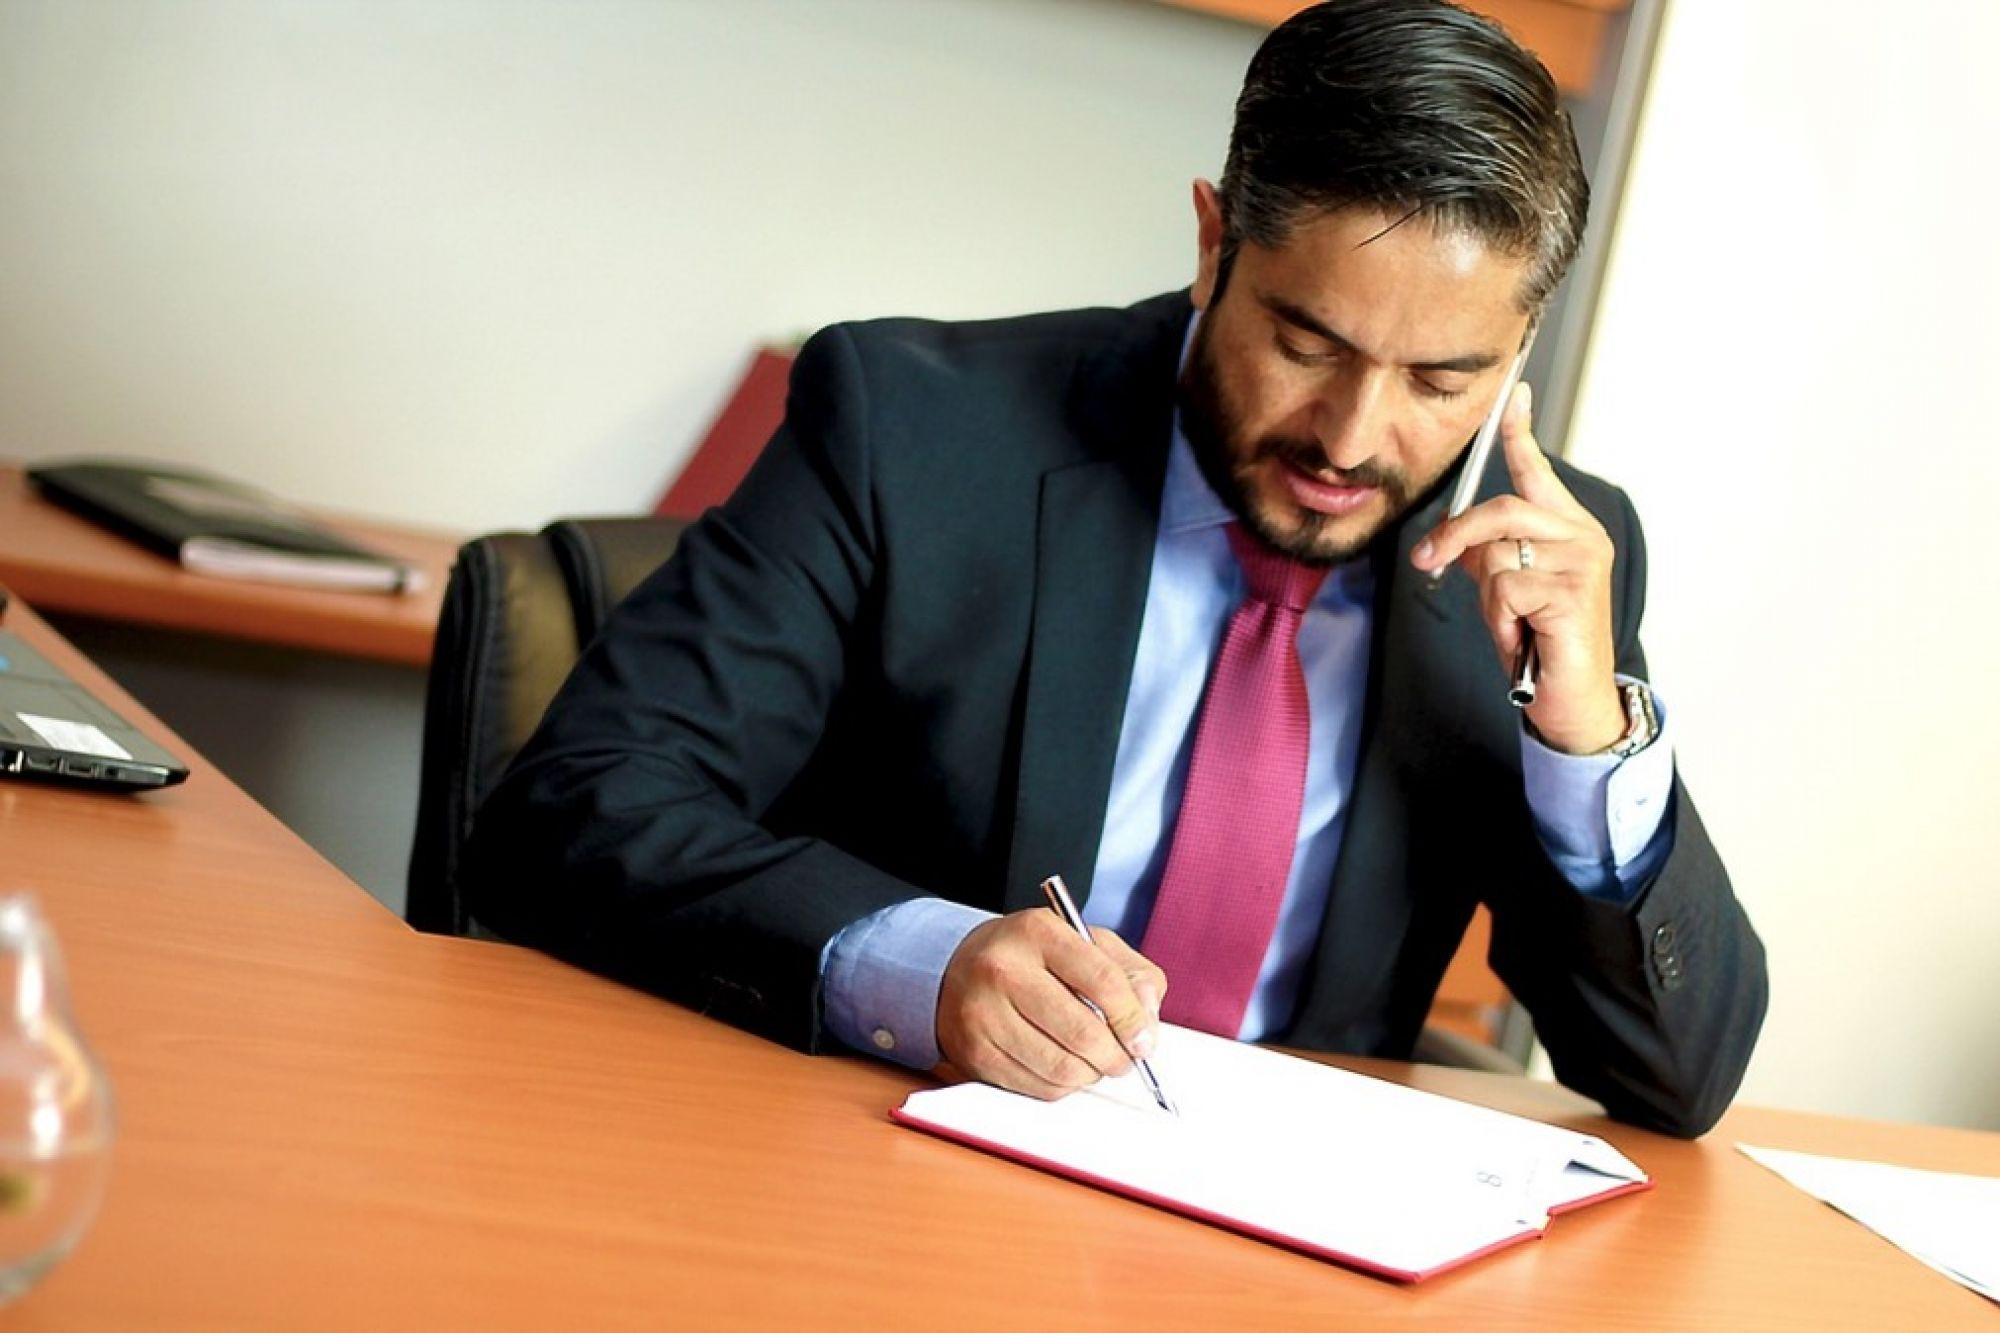 What to do when you receive an Employment claim?